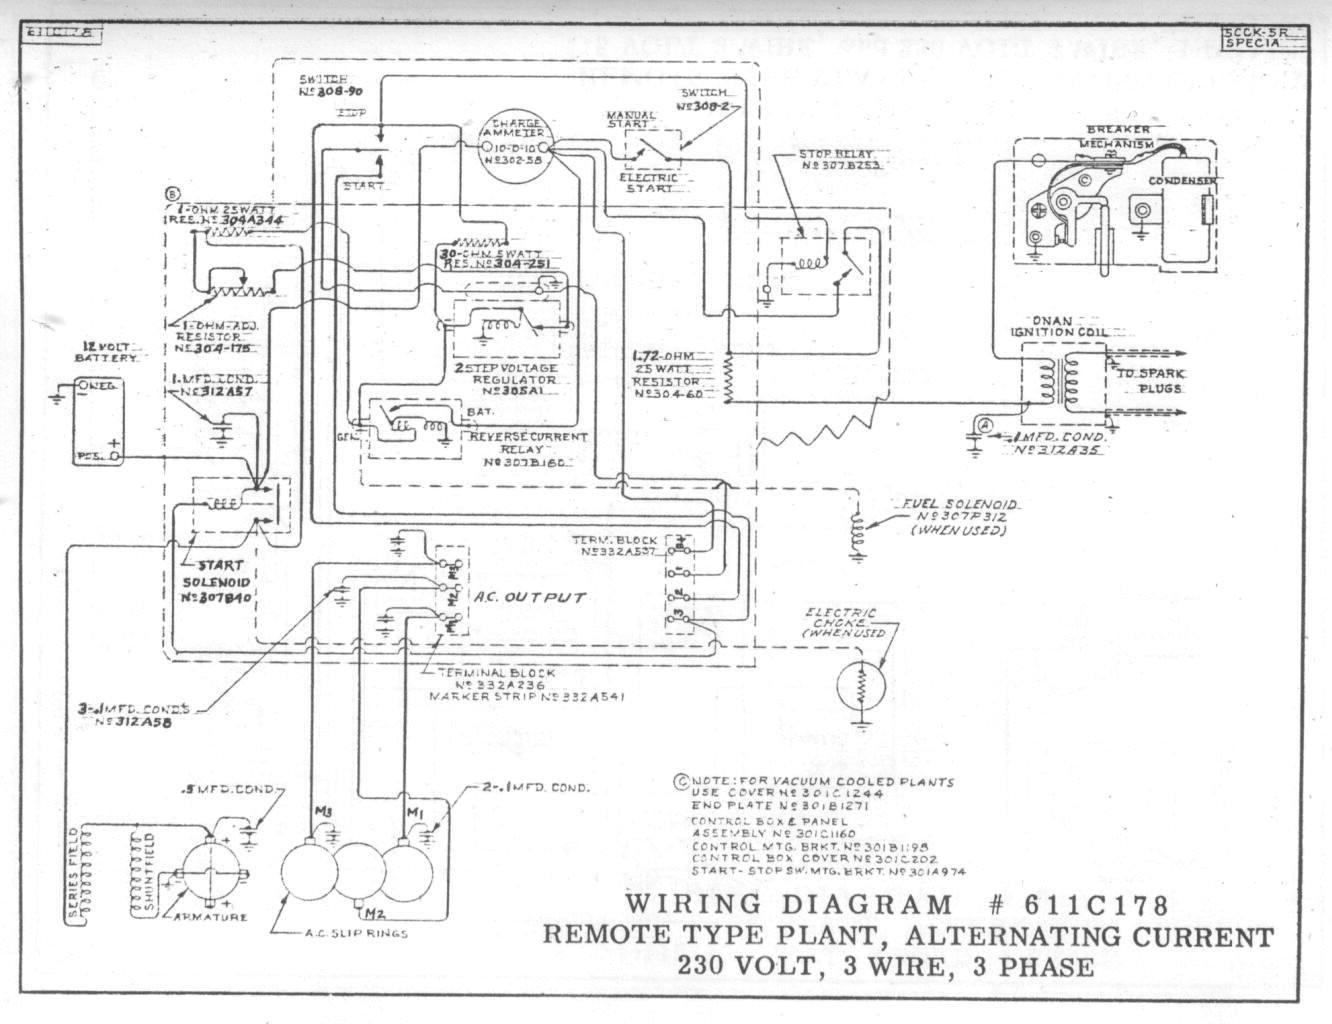 Remote Start Wiring Diagram For Generator